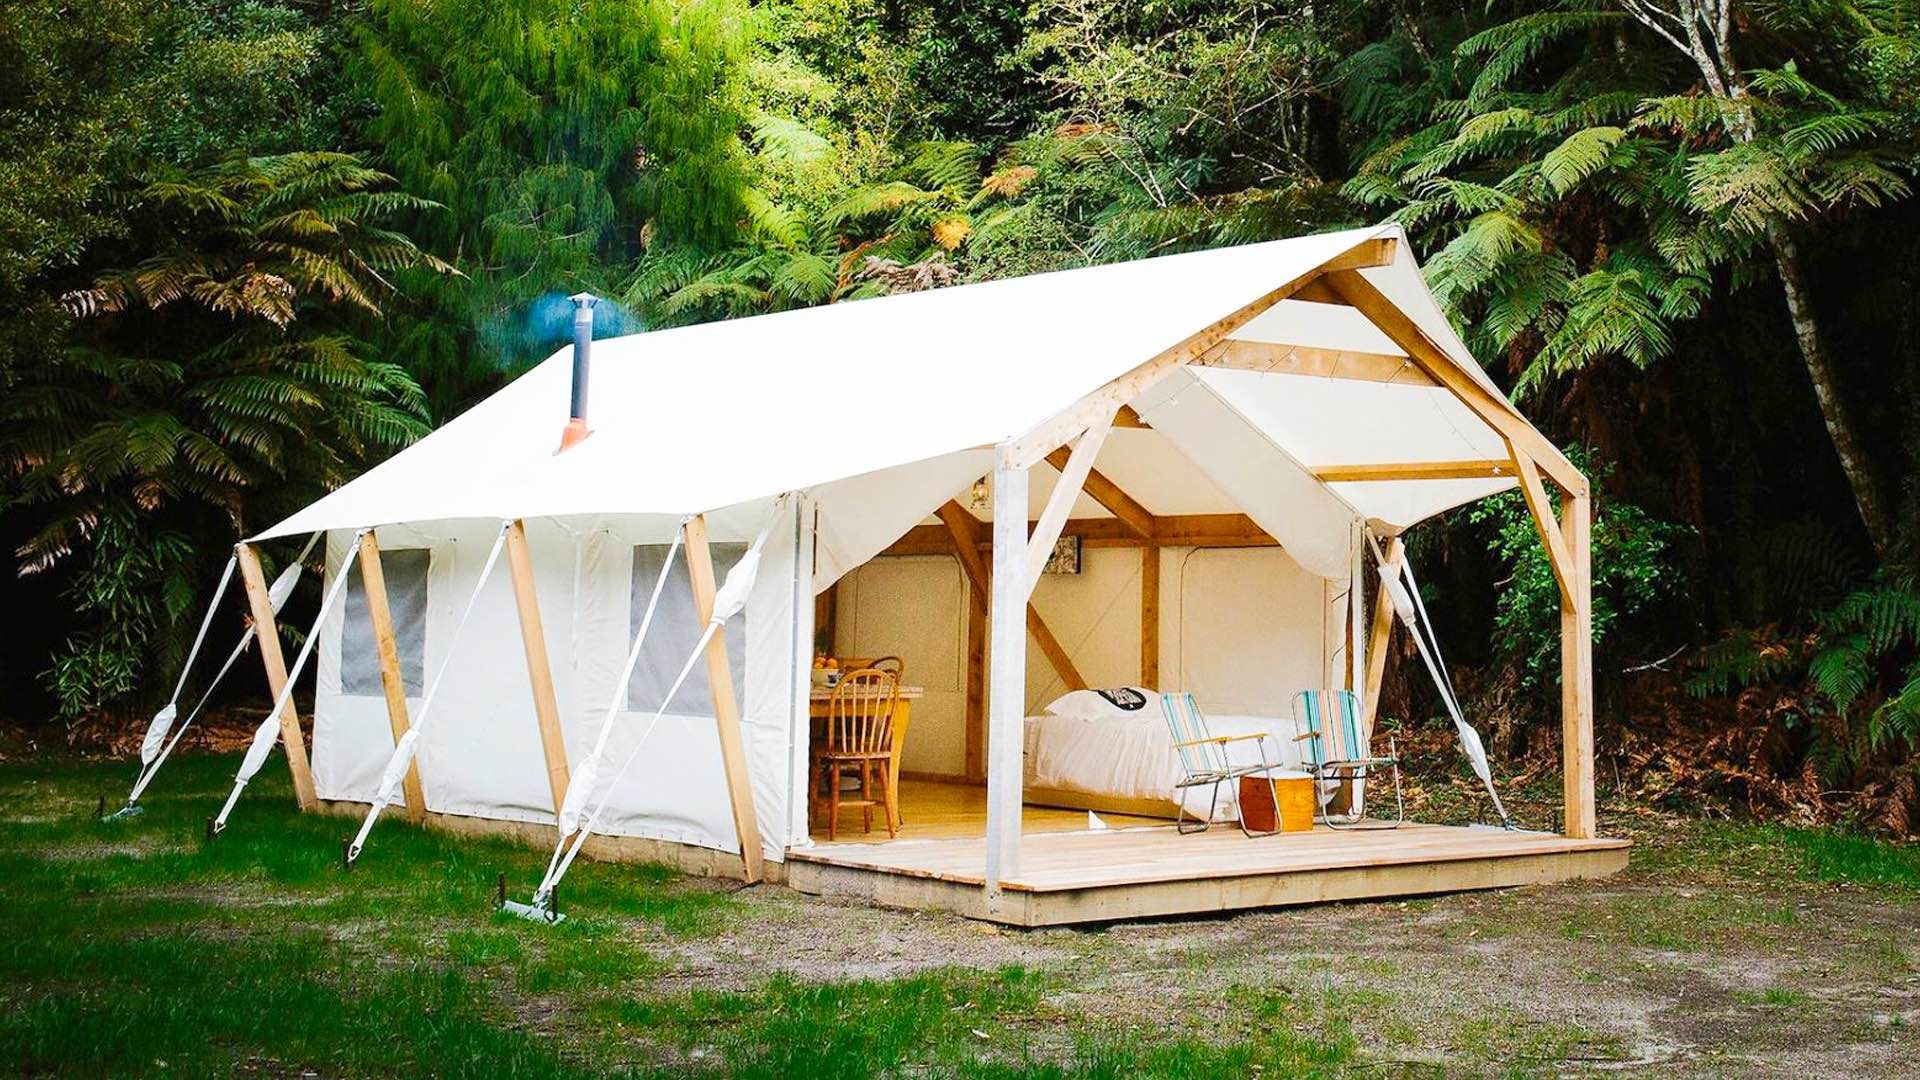 Glamping Tents By Baytex Glamping Tent Showroom Travel